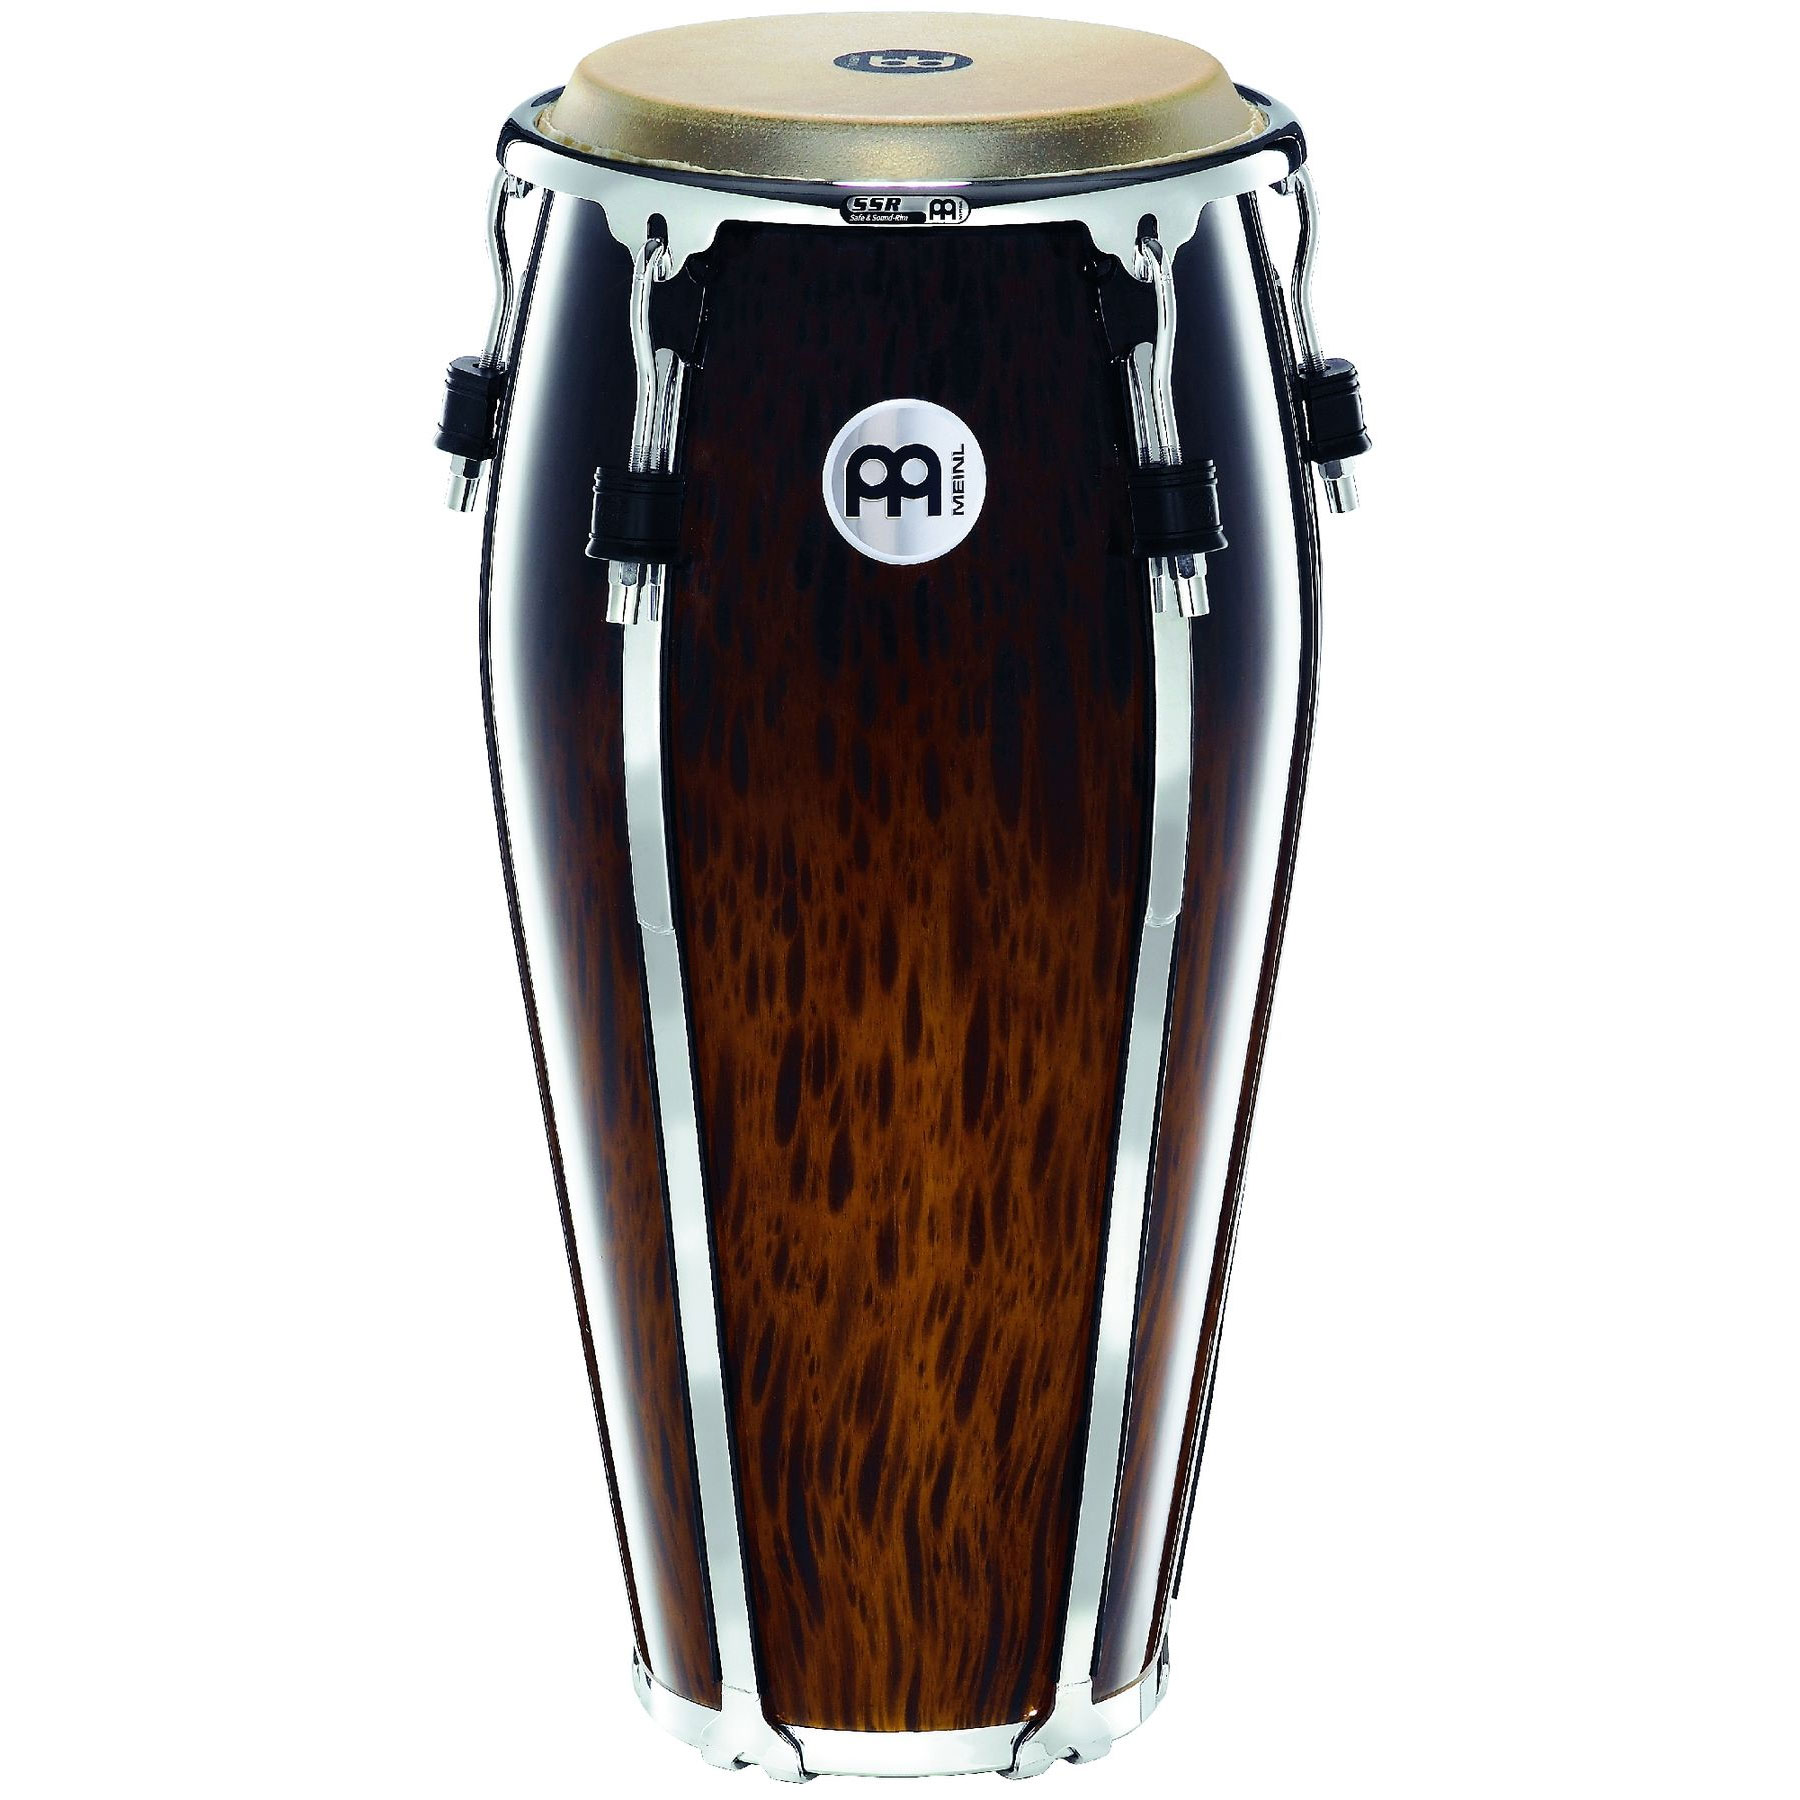 "Meinl 11"" Floatune Series Quinto Conga in Brown Burl"